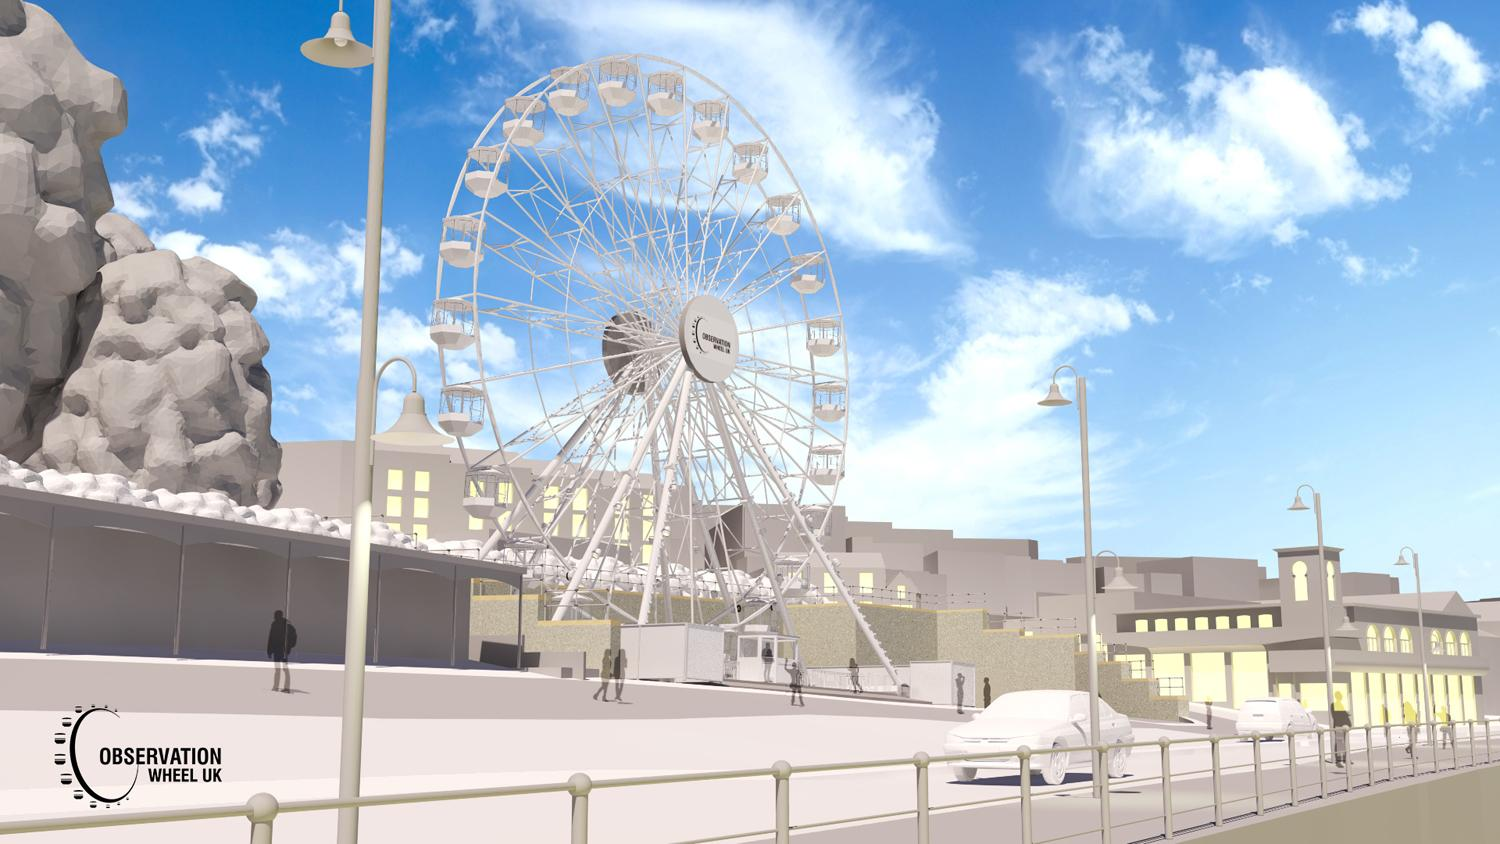 Artist's impression of the observation wheel on site